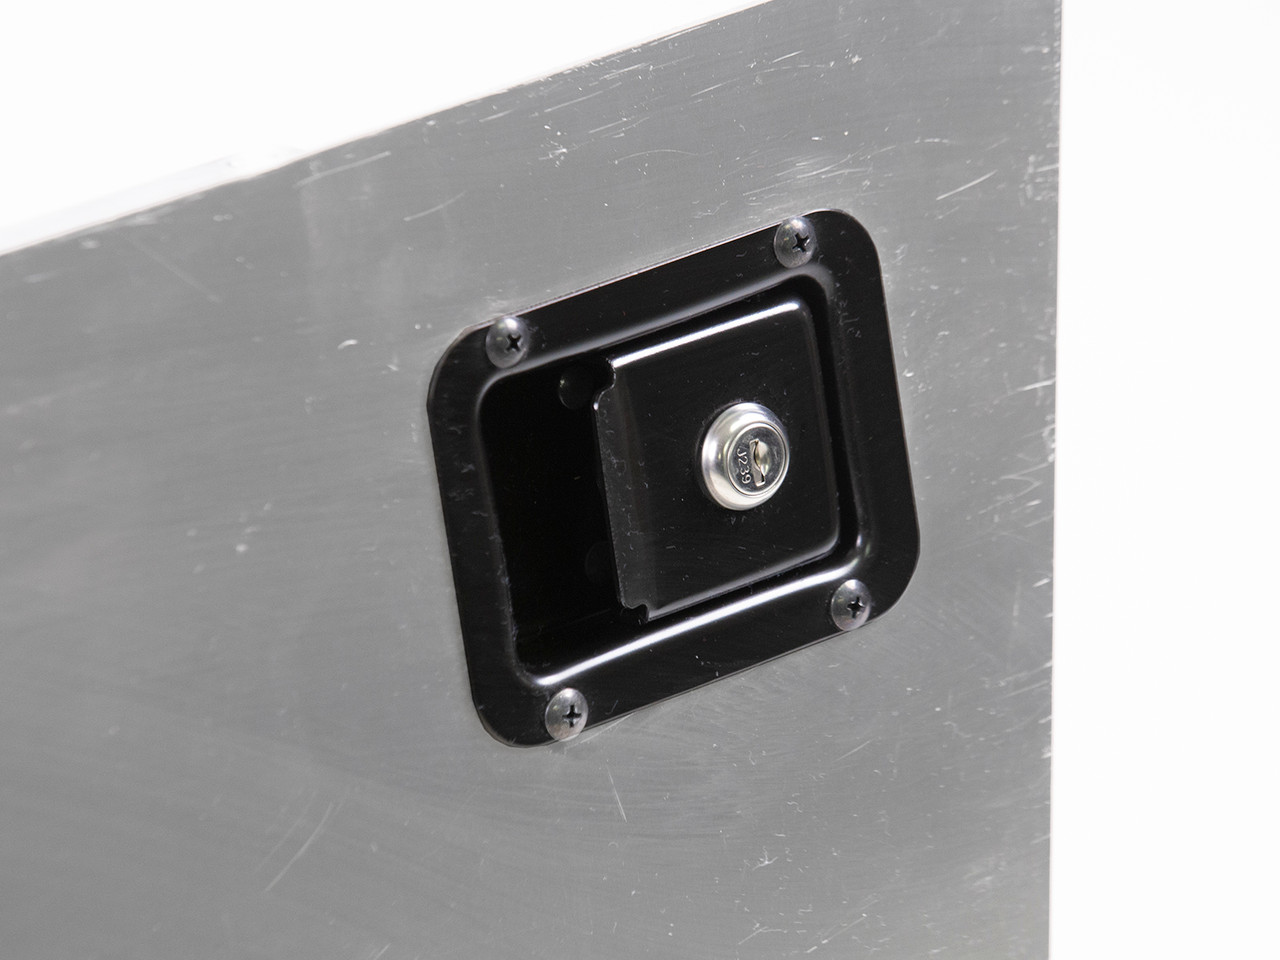 Uses factory-compatible latches with built in locks